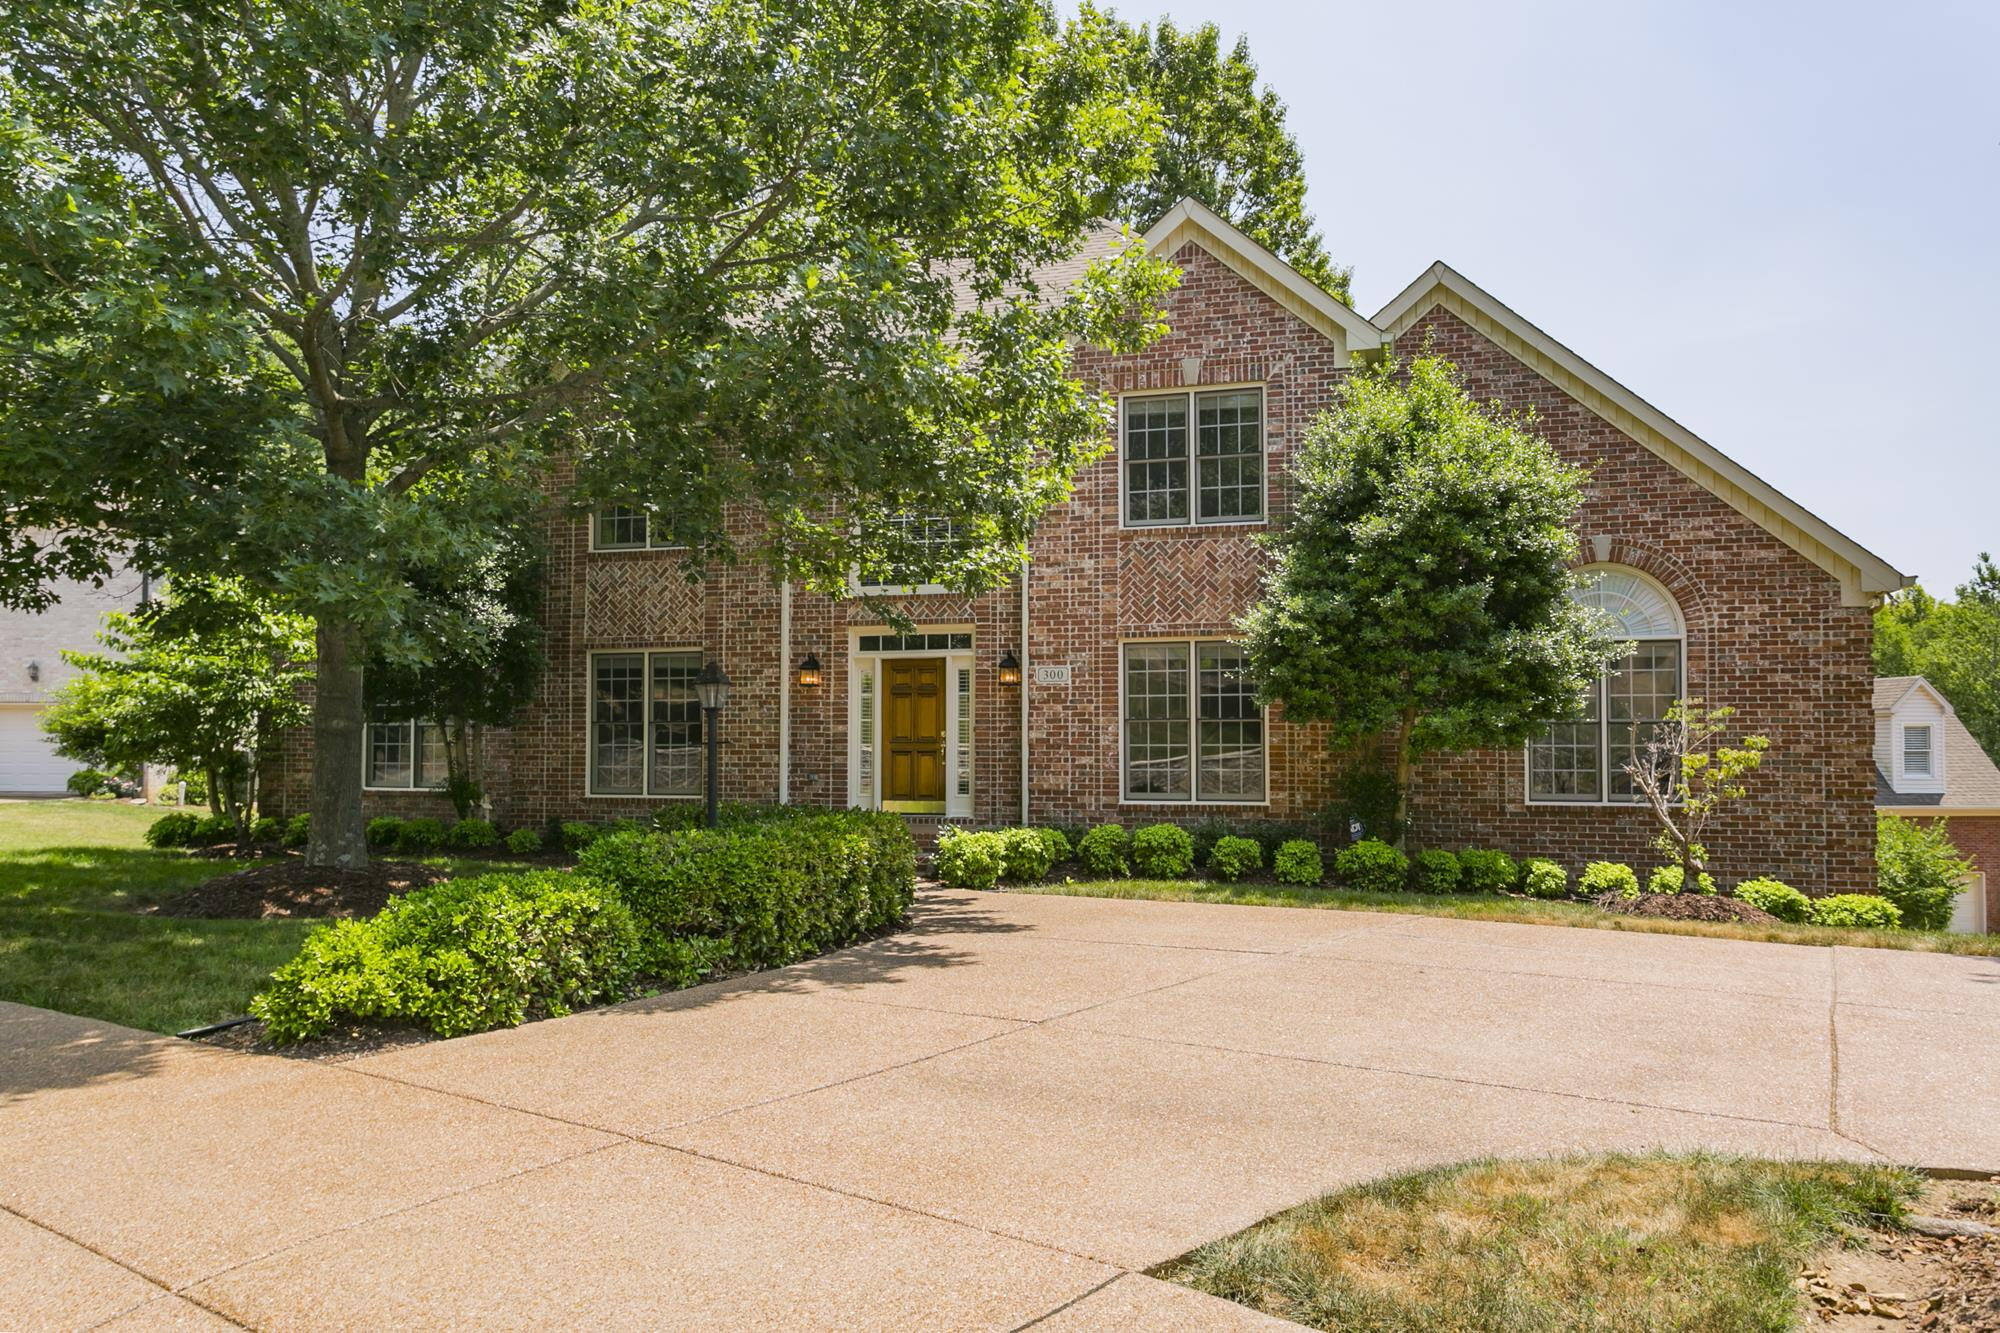 300 Rothwell Pl, Franklin, TN 37069 - Franklin, TN real estate listing